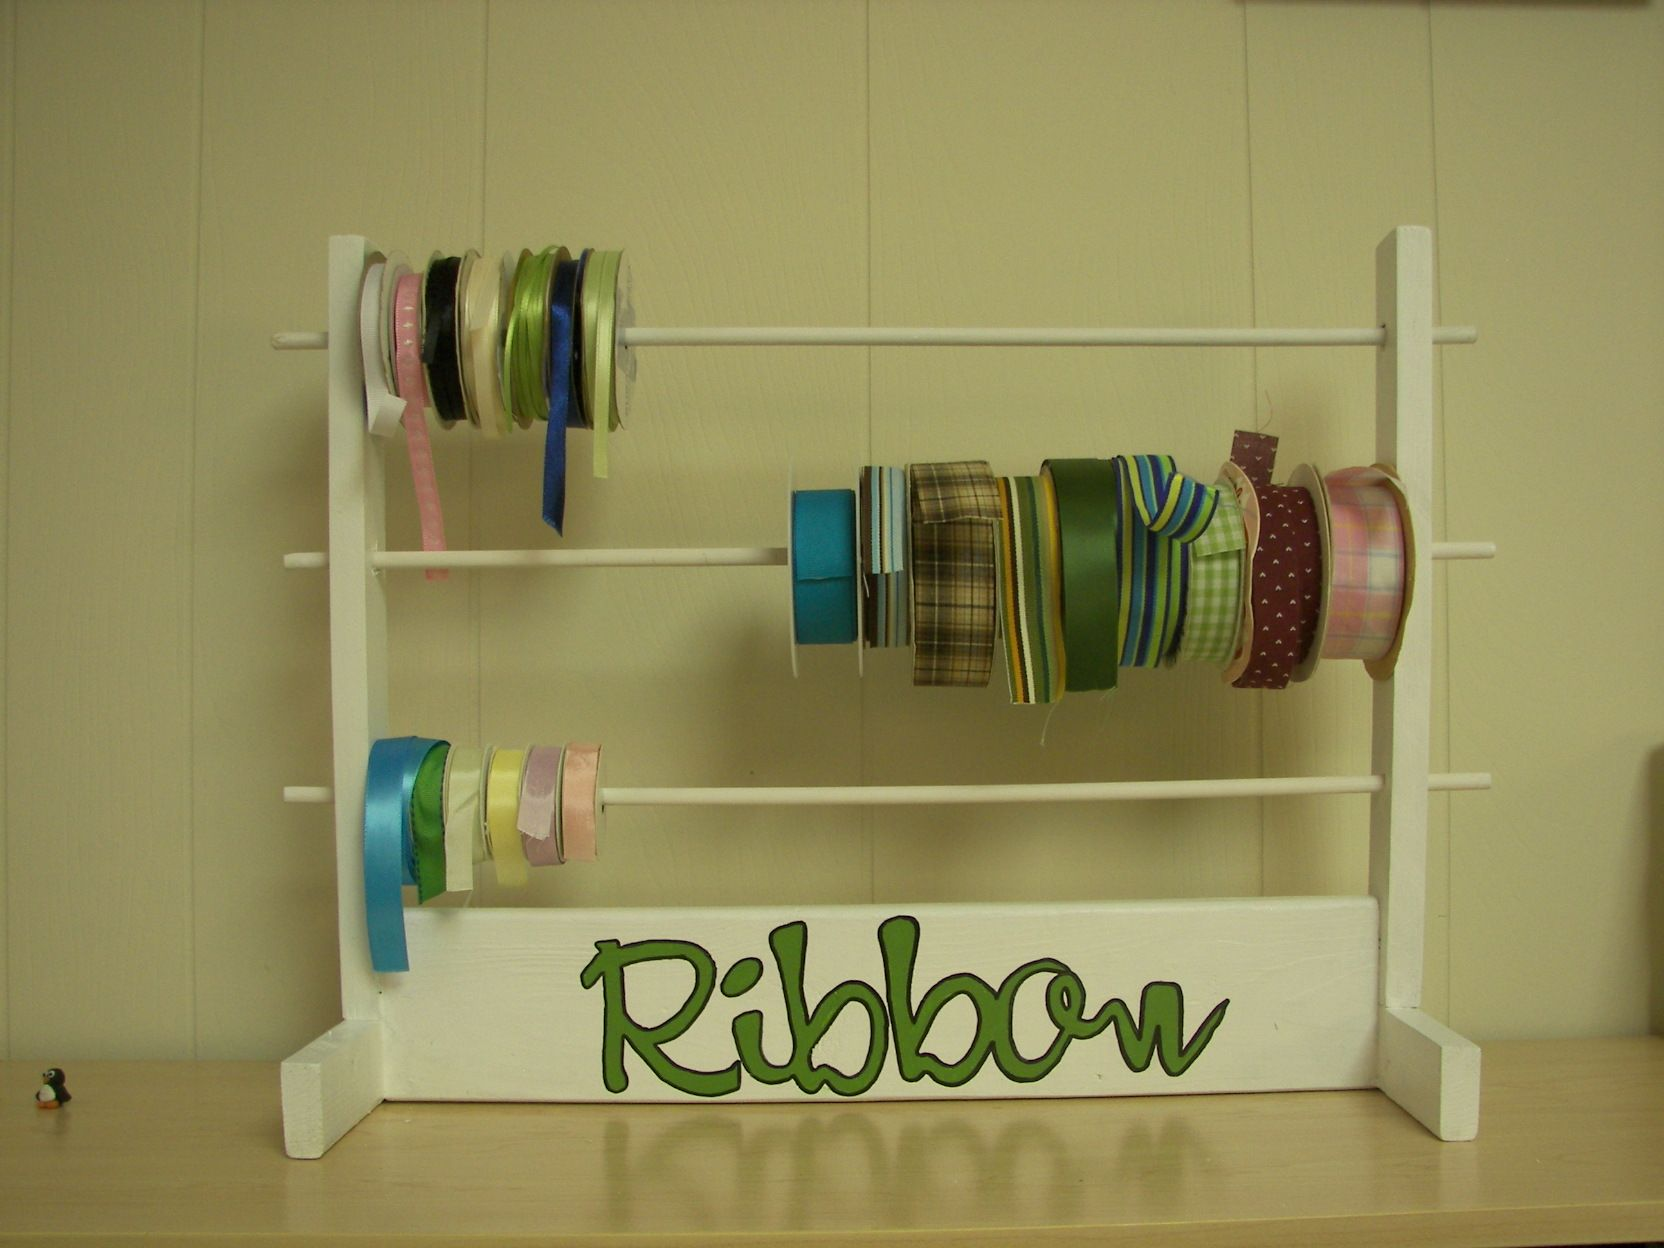 Ribbon holder do it yourself home projects from ana white ribbon holder do it yourself home projects from ana white solutioingenieria Gallery